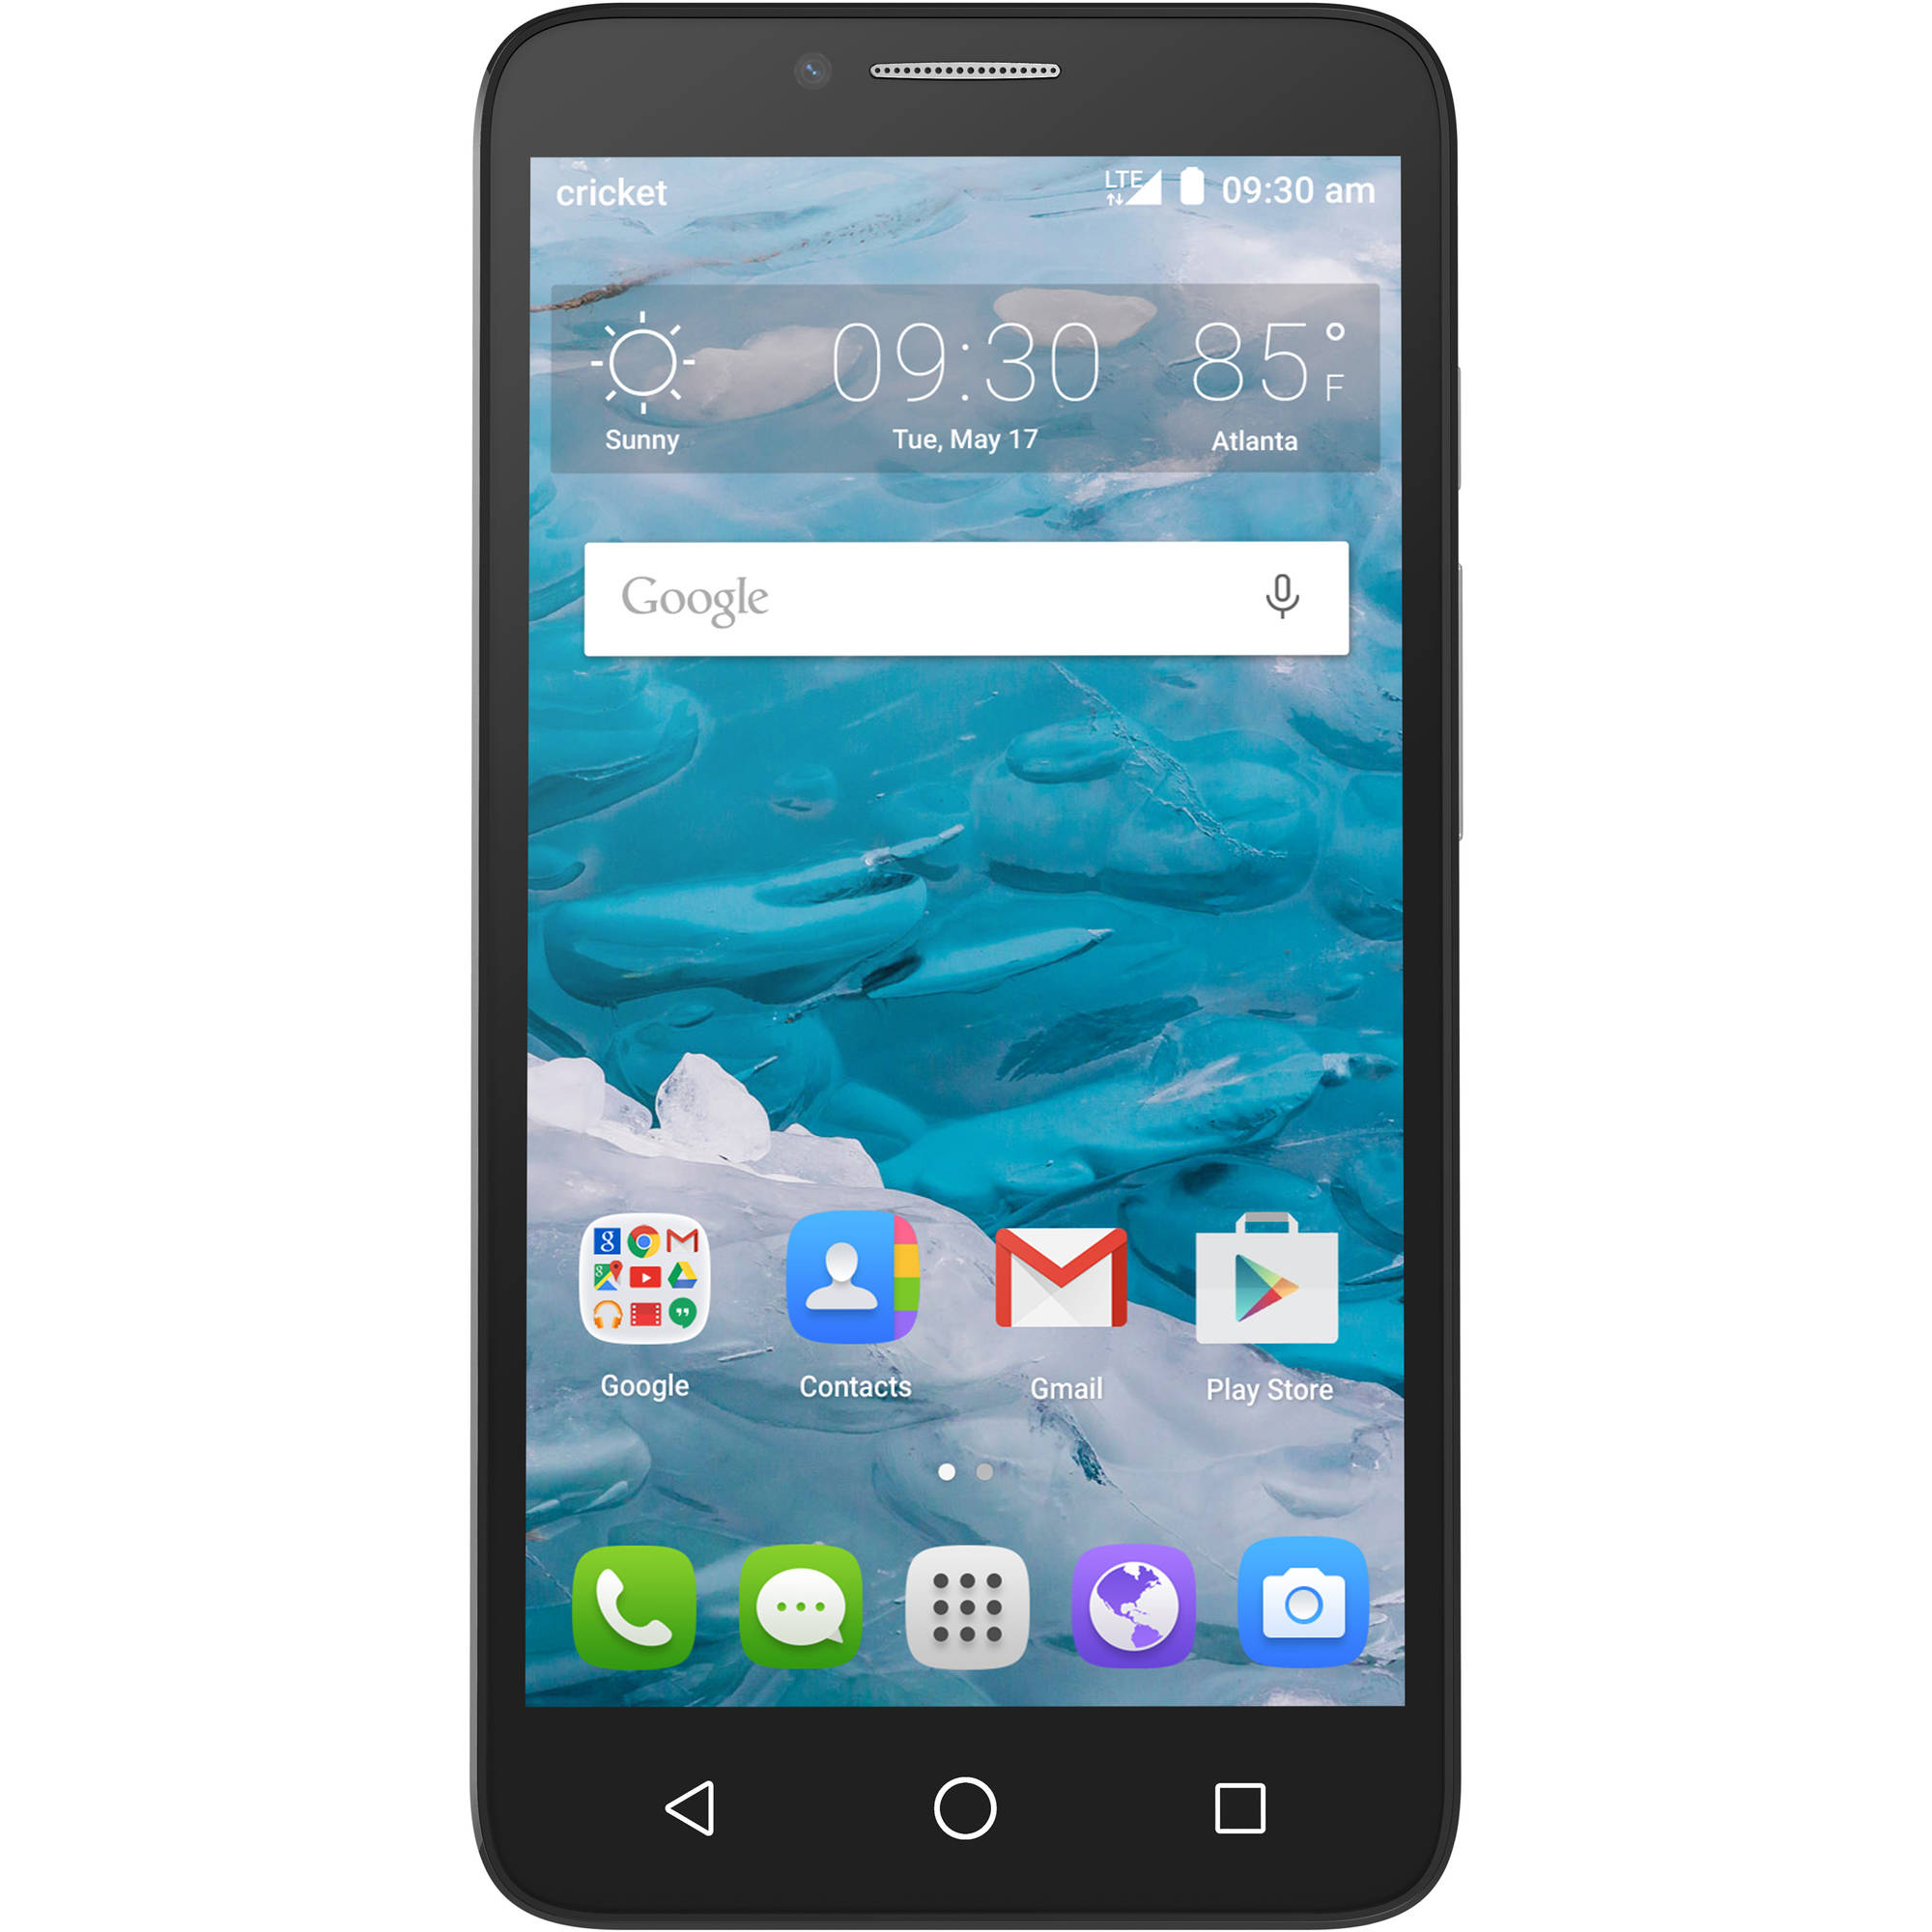 Cricket Alcatel OneTouch Flint Prepaid Android Smartphone